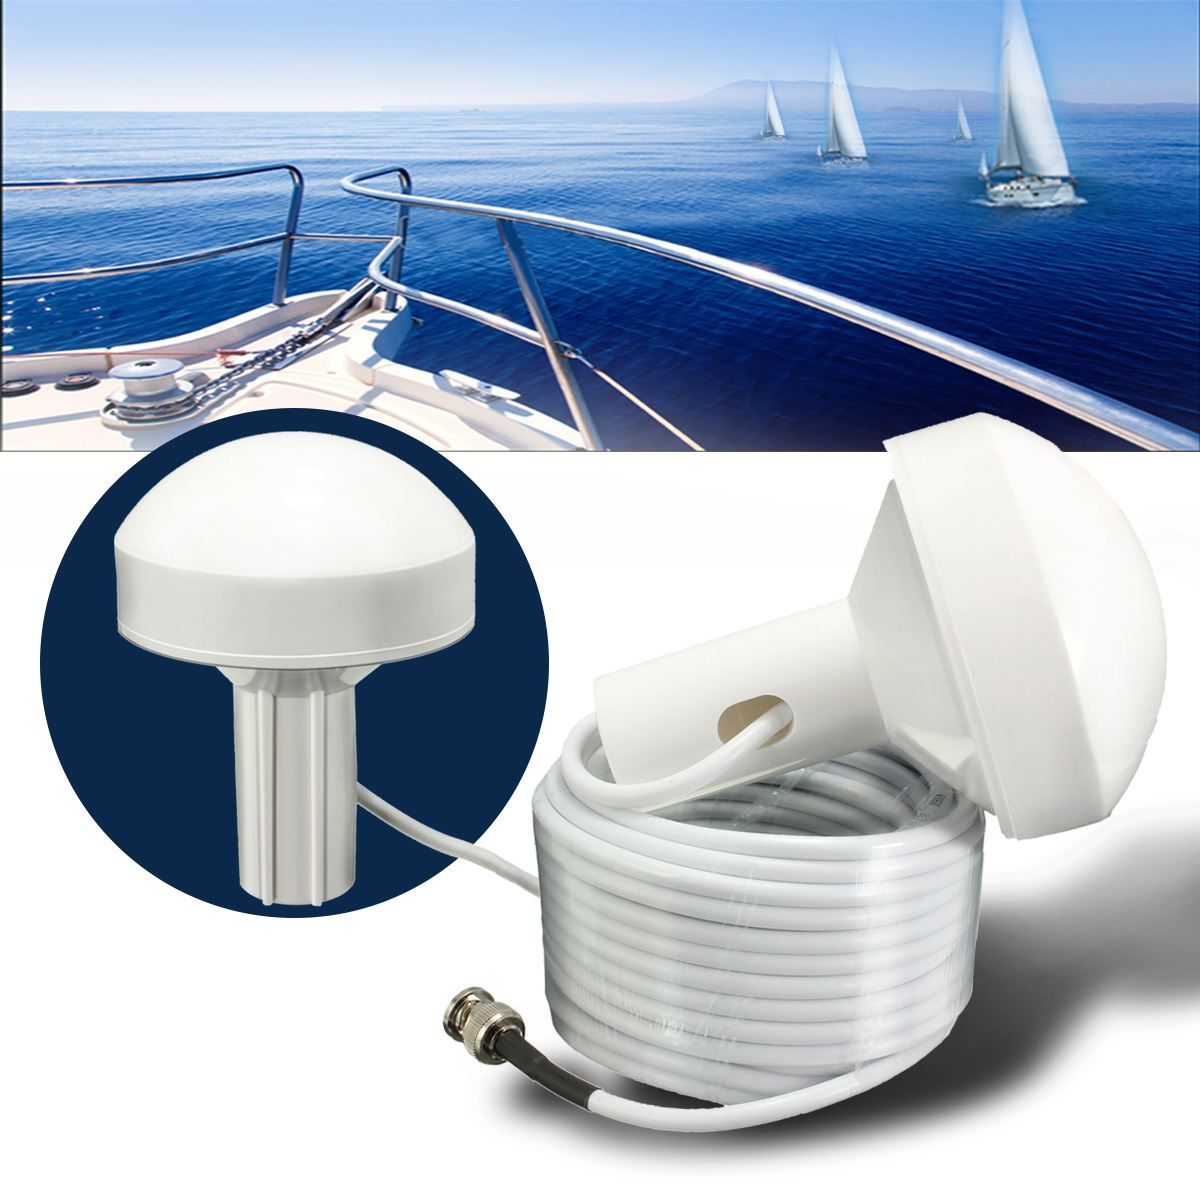 1pcs External Marine Boat cable marine positioning navigation active GNSS Gps antenna, BNC connector, cable length 5M1pcs External Marine Boat cable marine positioning navigation active GNSS Gps antenna, BNC connector, cable length 5M